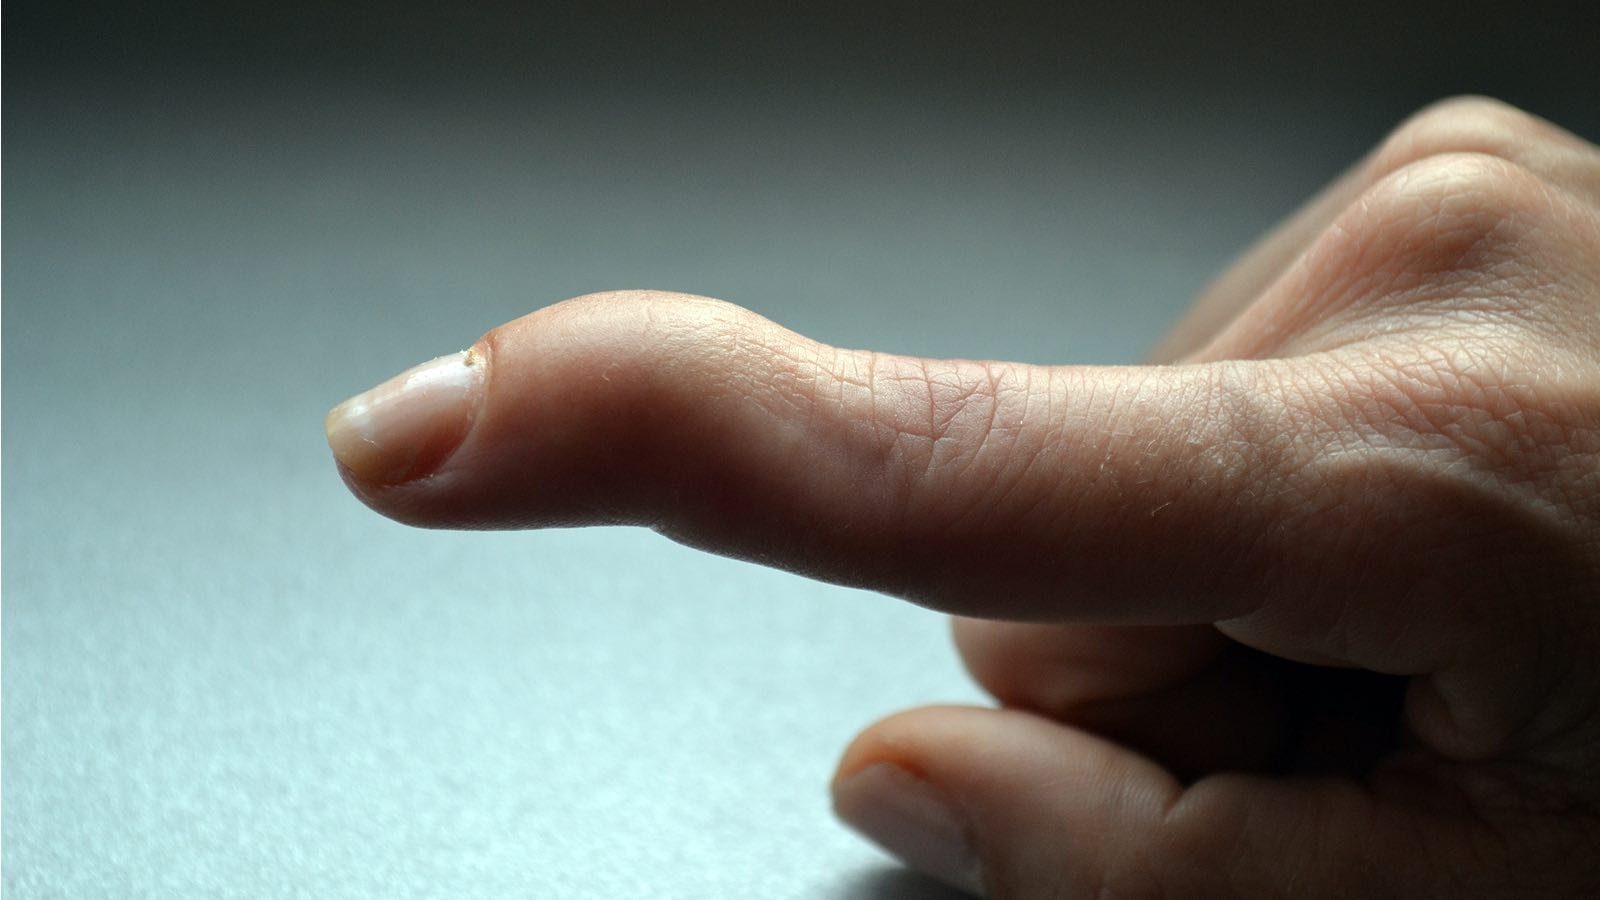 Central Slip and Mallet Finger Management : Effectively manage extensor tendon injuries of the finger to prevent disfigurement and impaired hand function